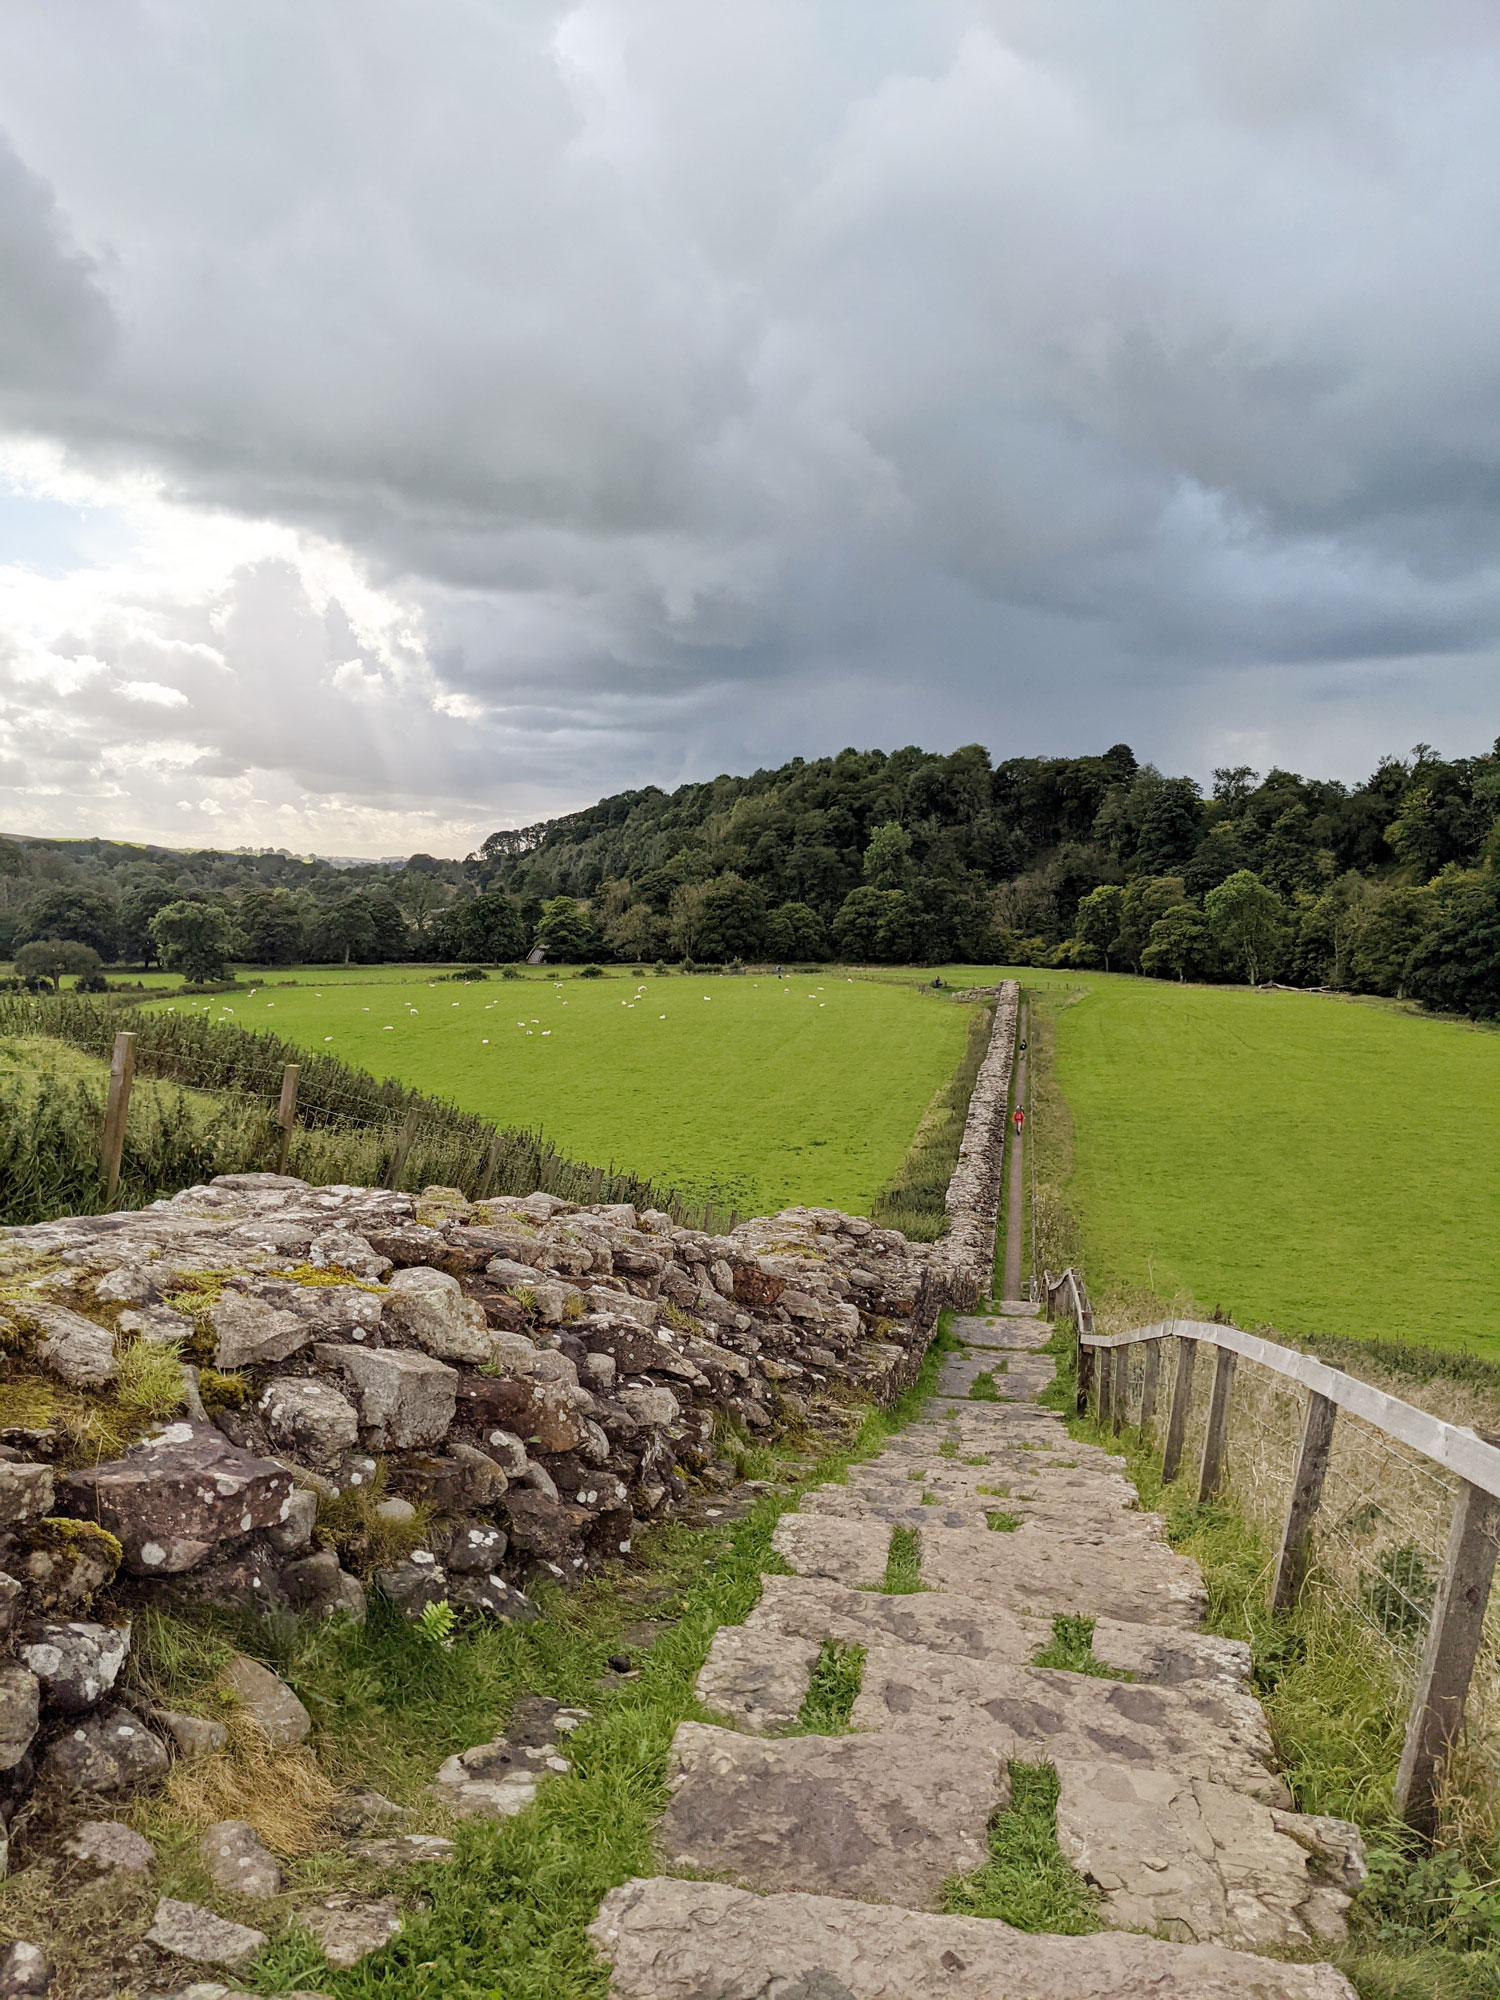 Just along from the bridge over the River Irthing